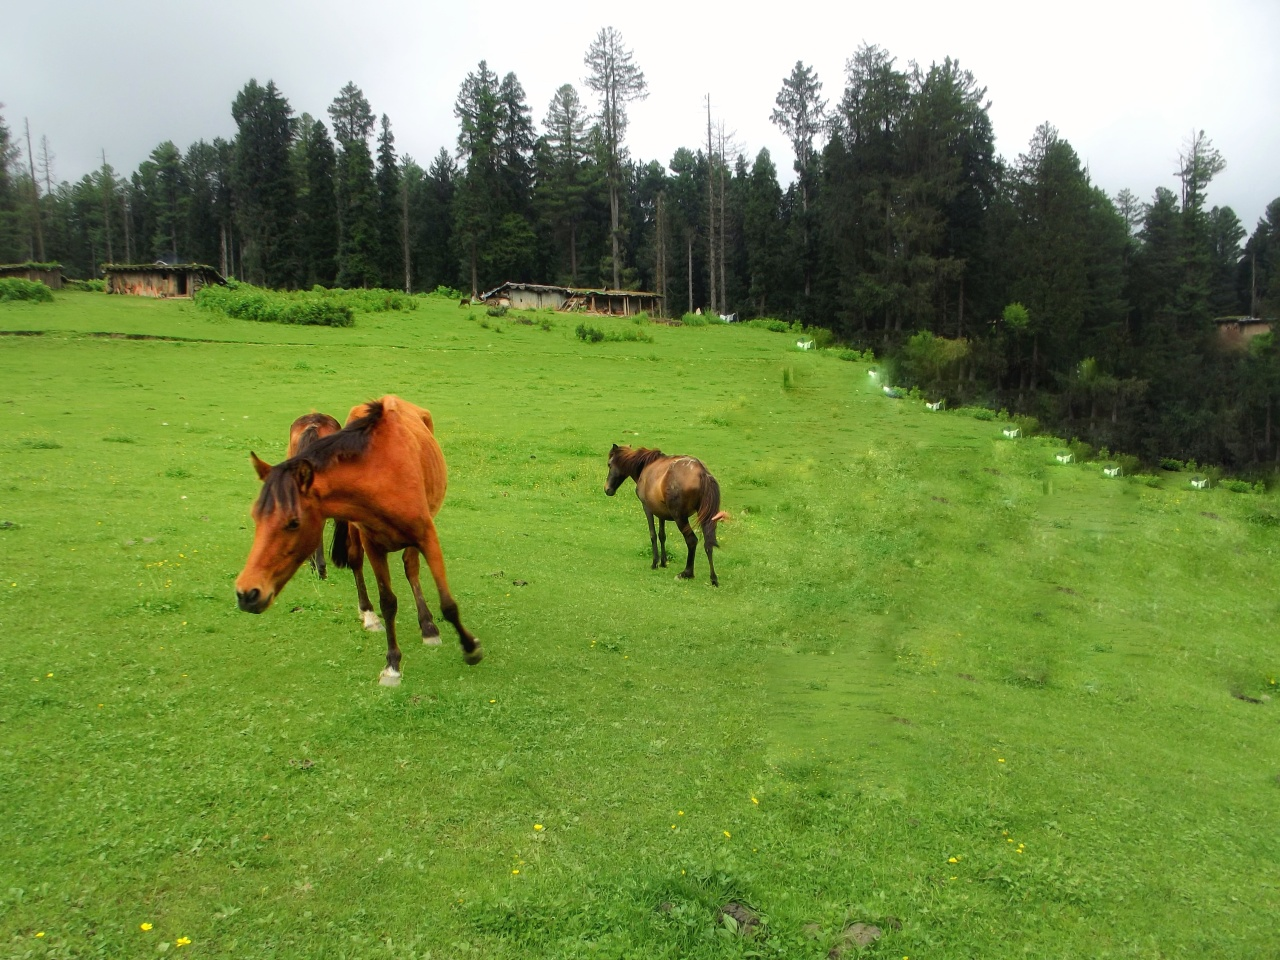 Yousmarg-The unexplored beauty of Kashmir Valley